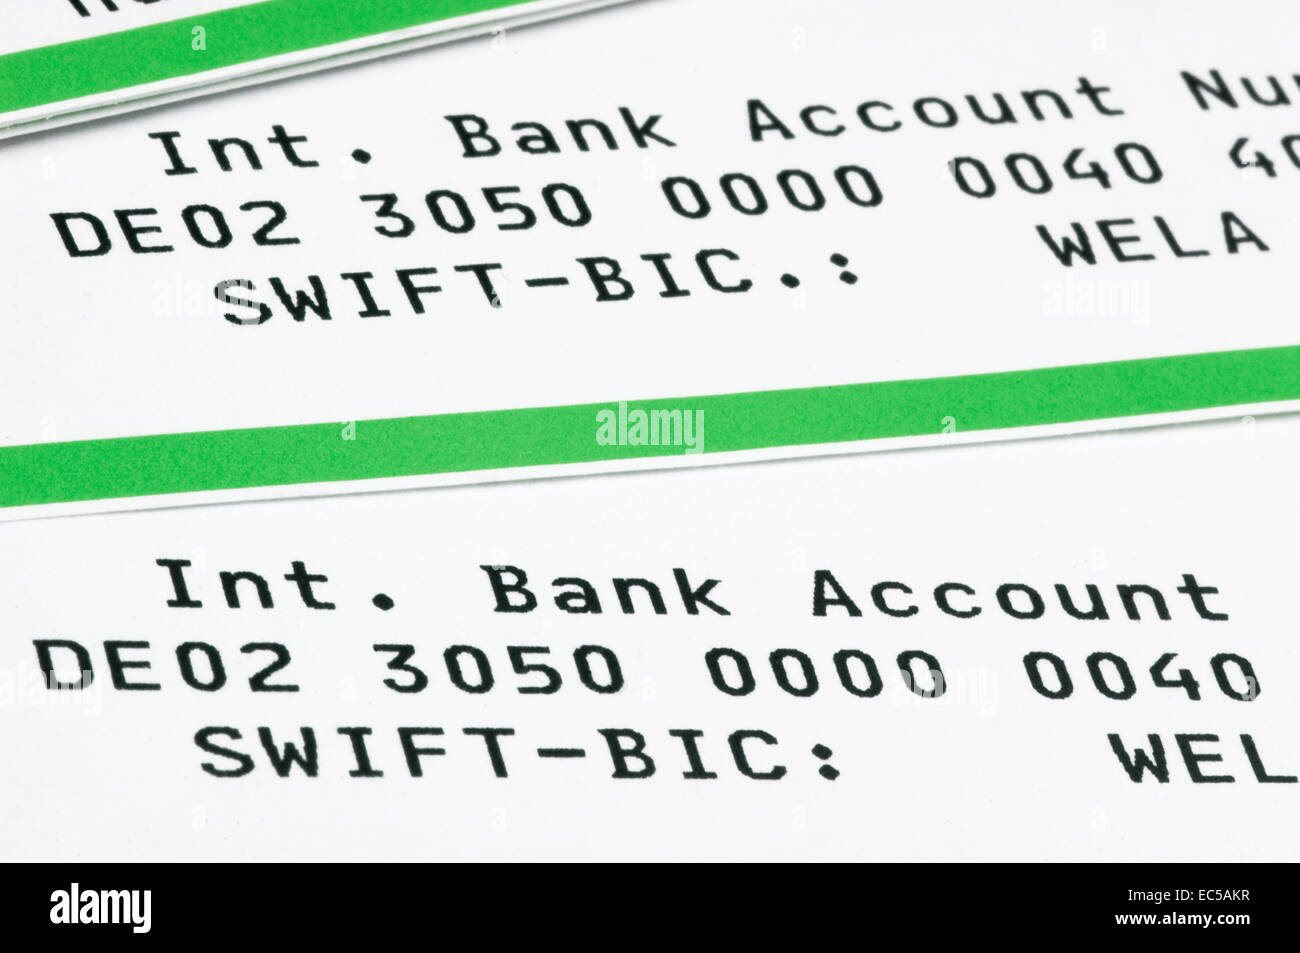 Statement Of Bank Account Stock Photos & Statement Of Bank Account